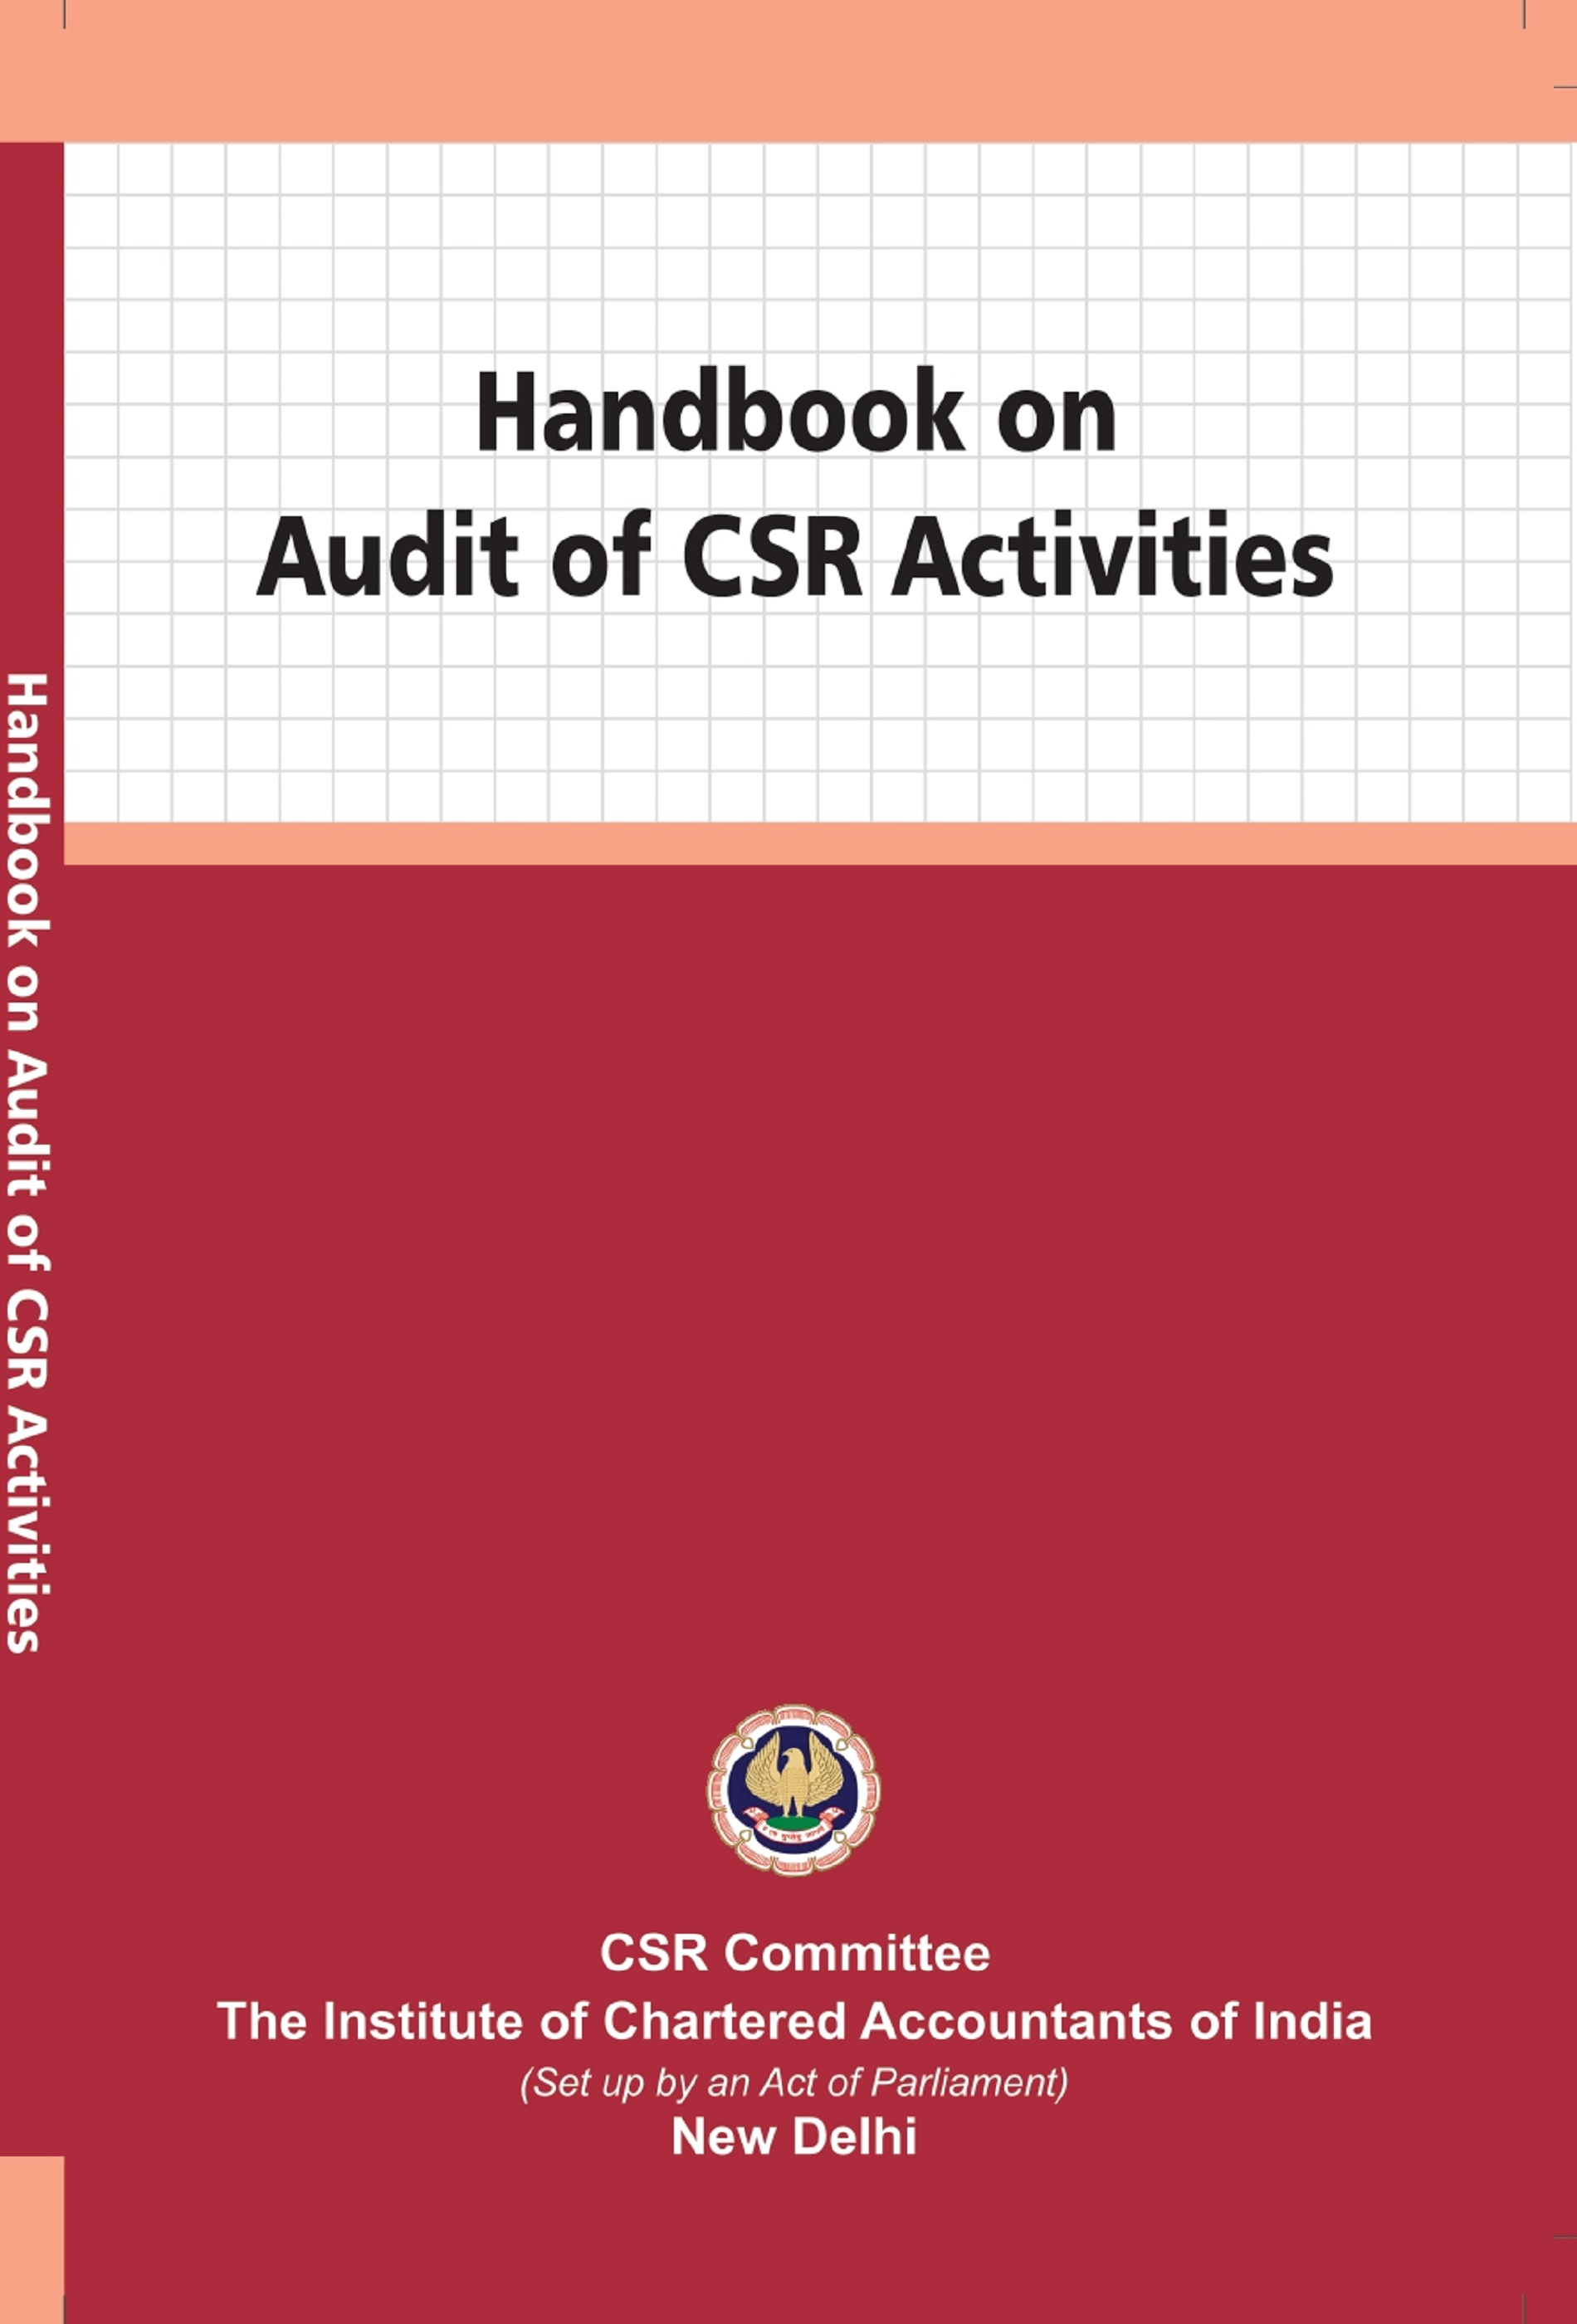 Handbook on Audit of CSR Activities (December, 2020)